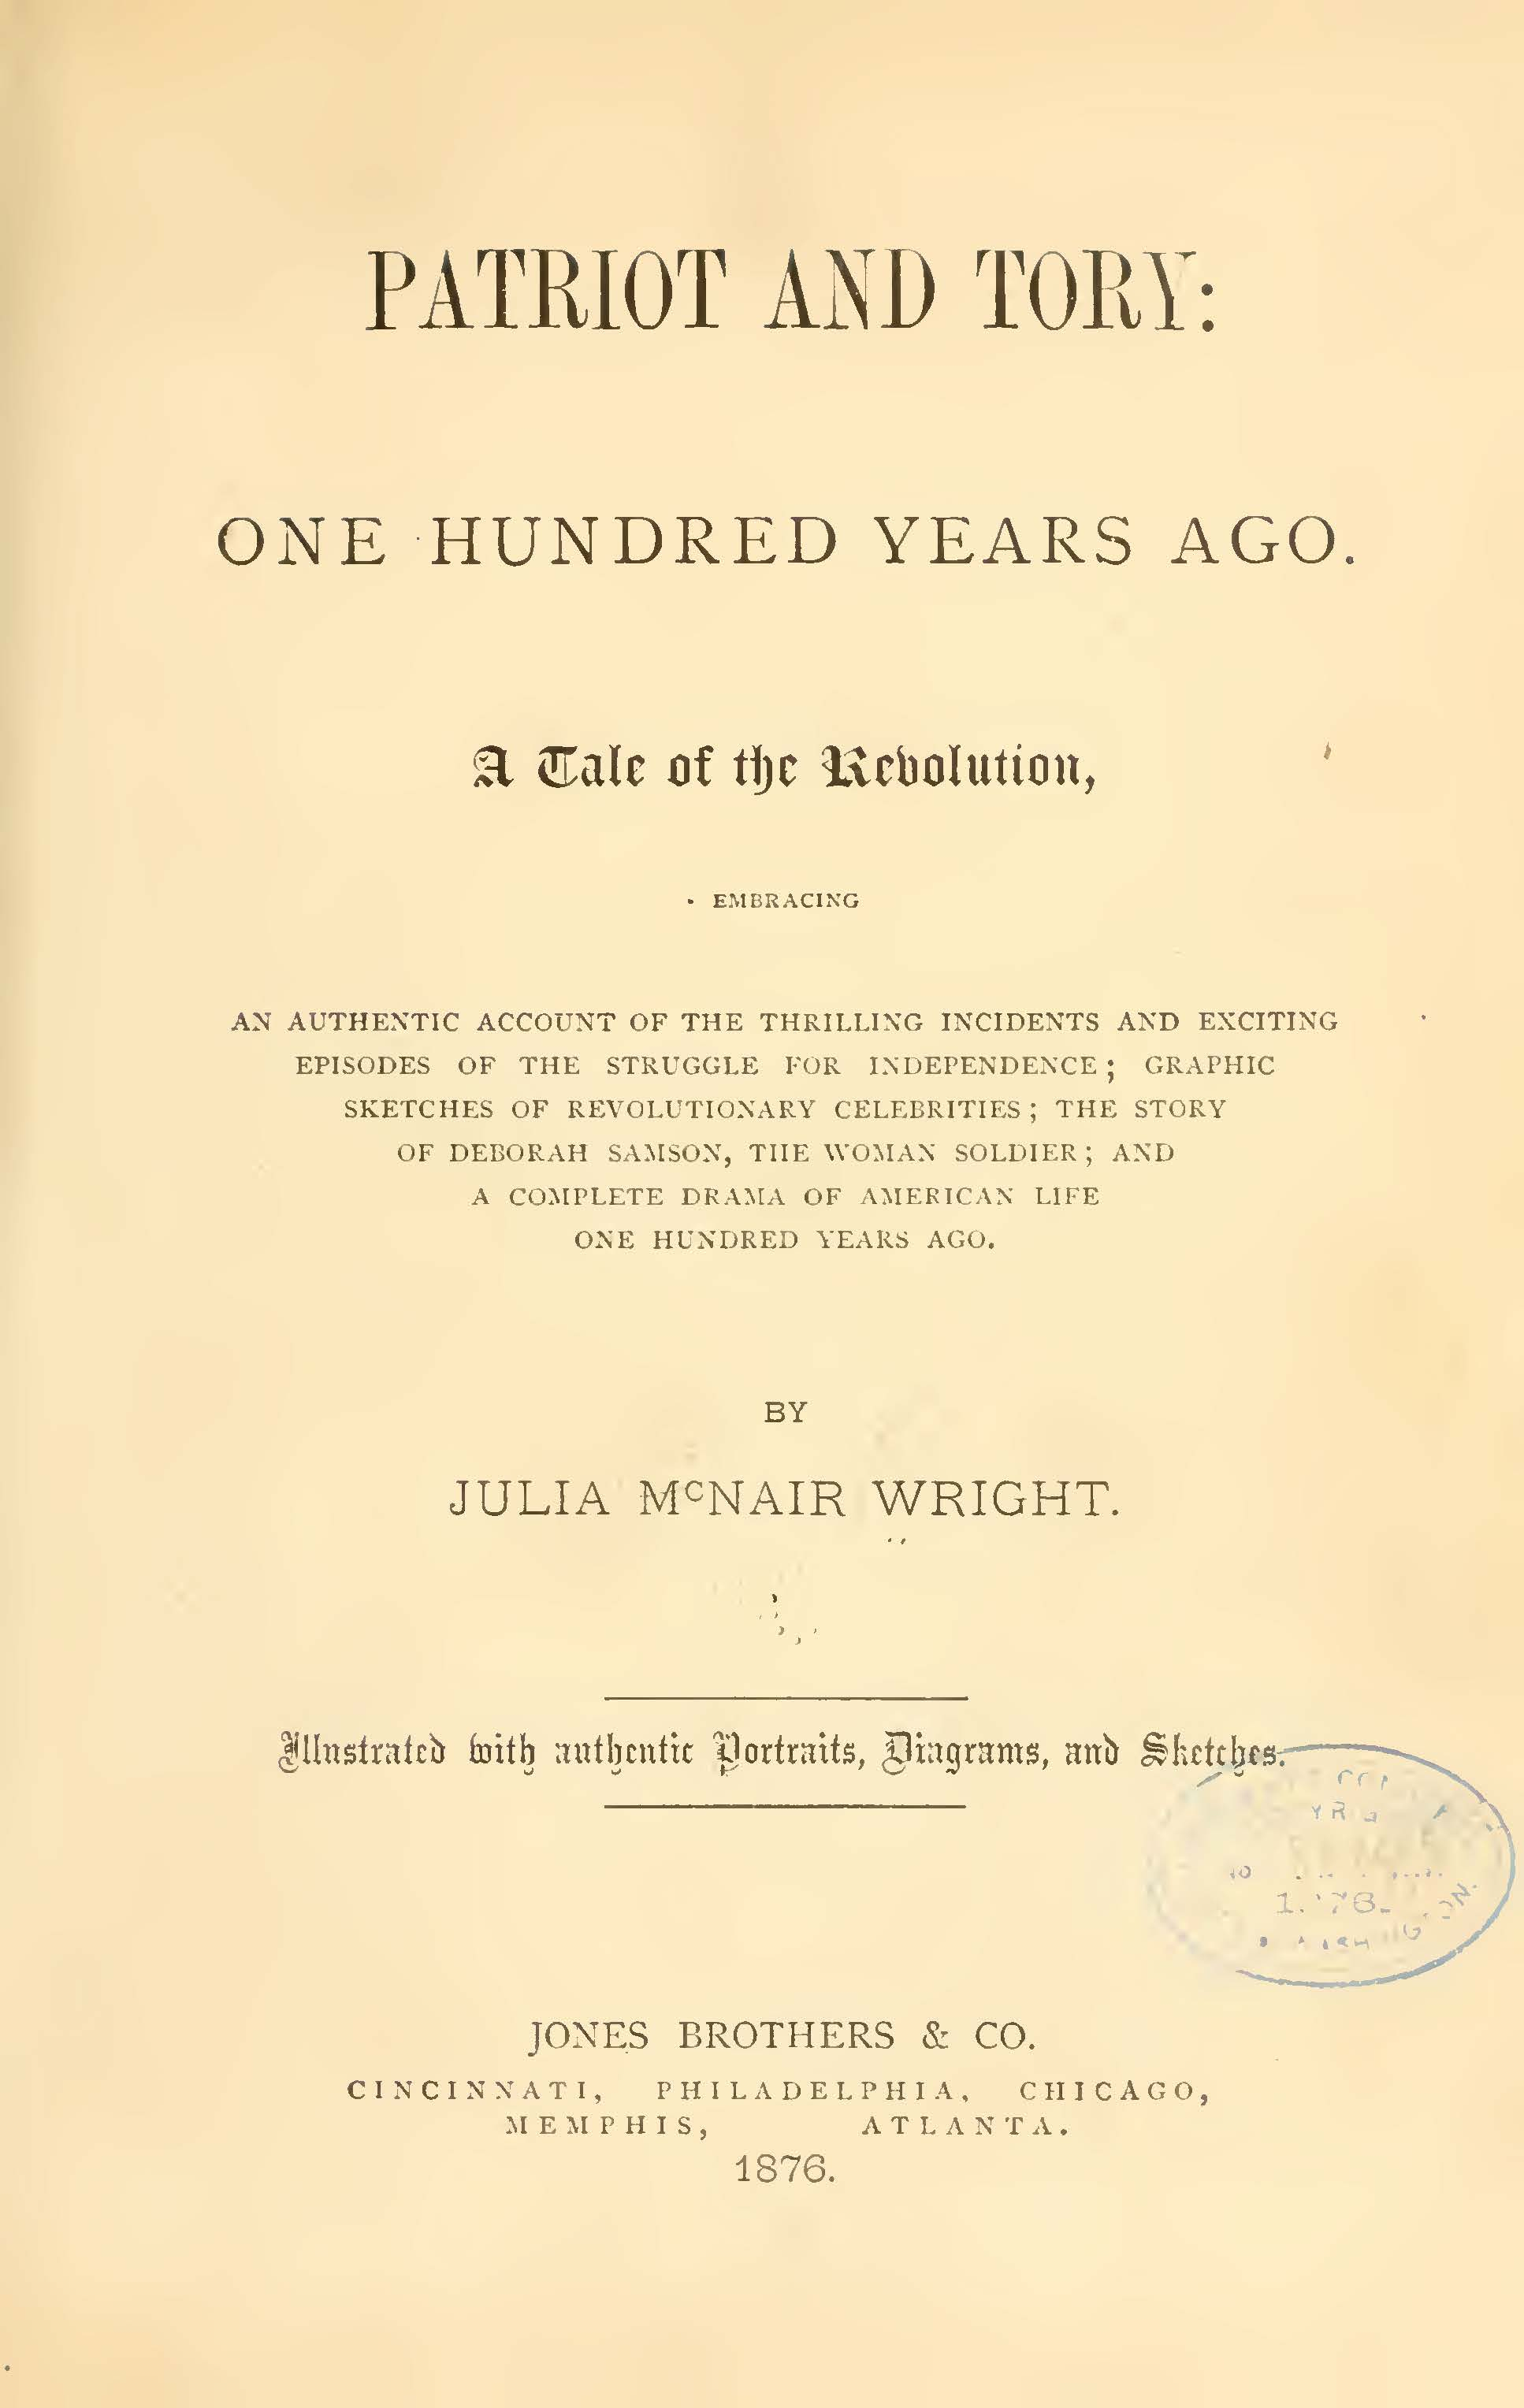 Wright, Julia McNair, Patriot and Tory Title Page.jpg